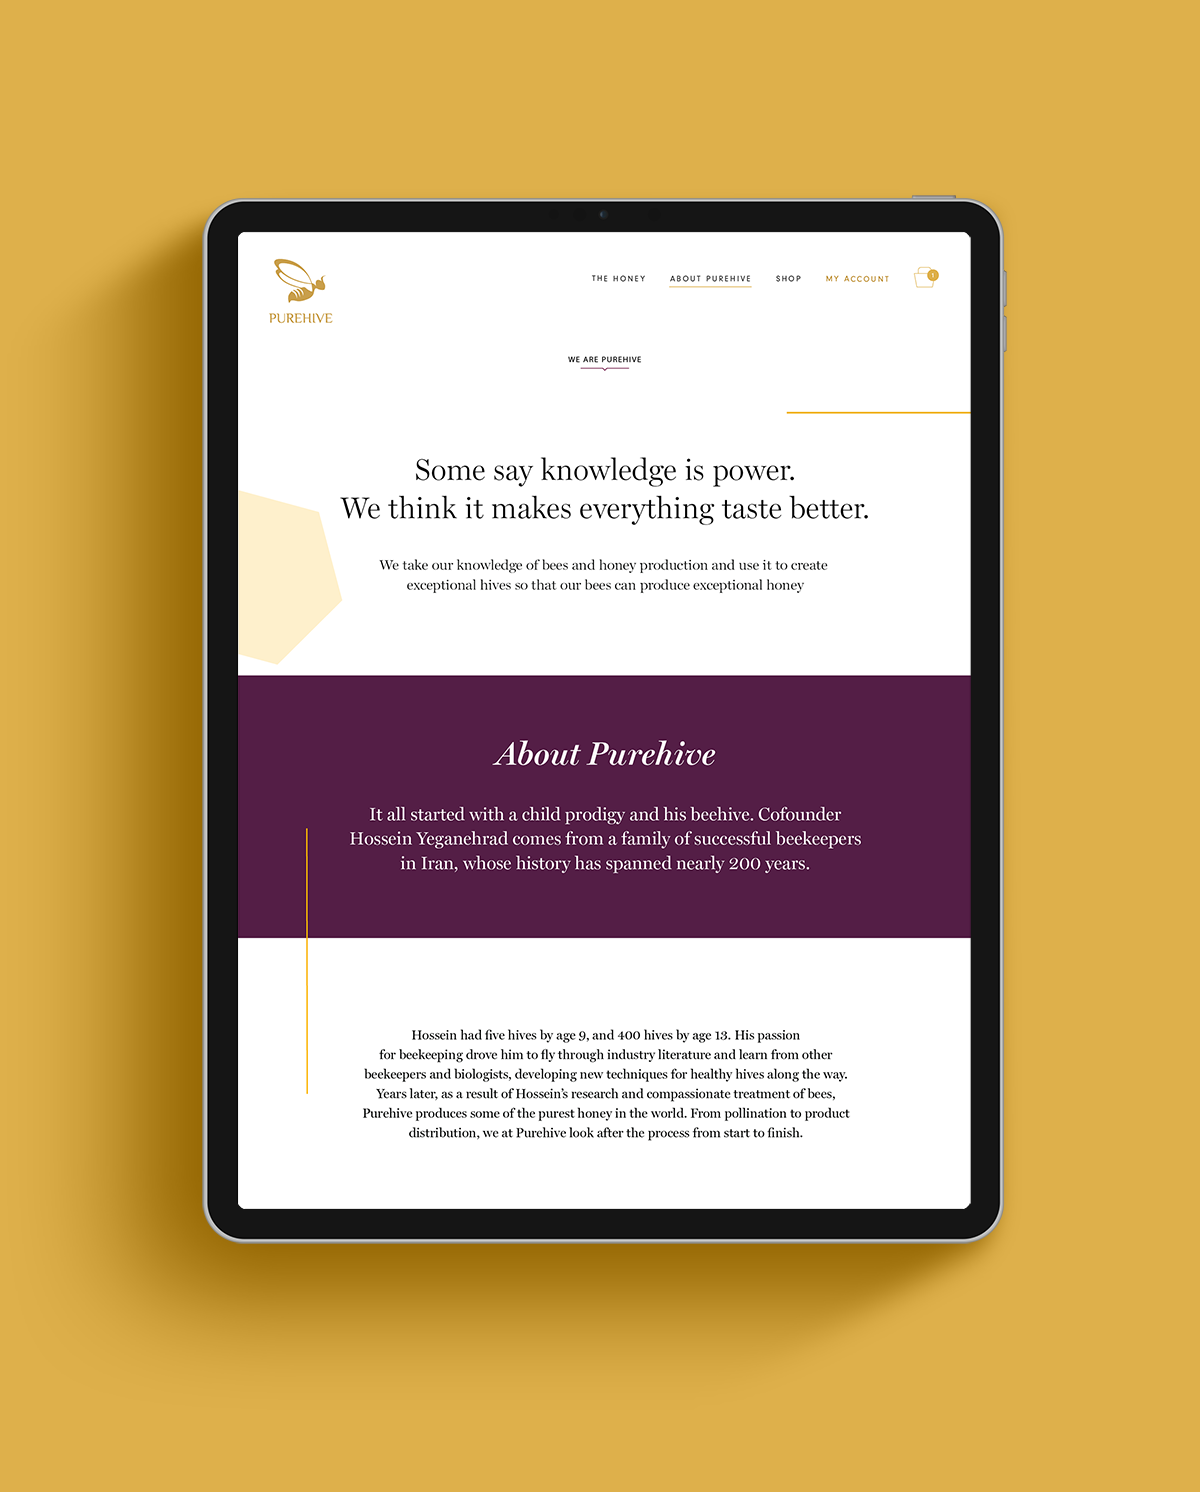 About Purehive page shown on a black iPad on a yellow background